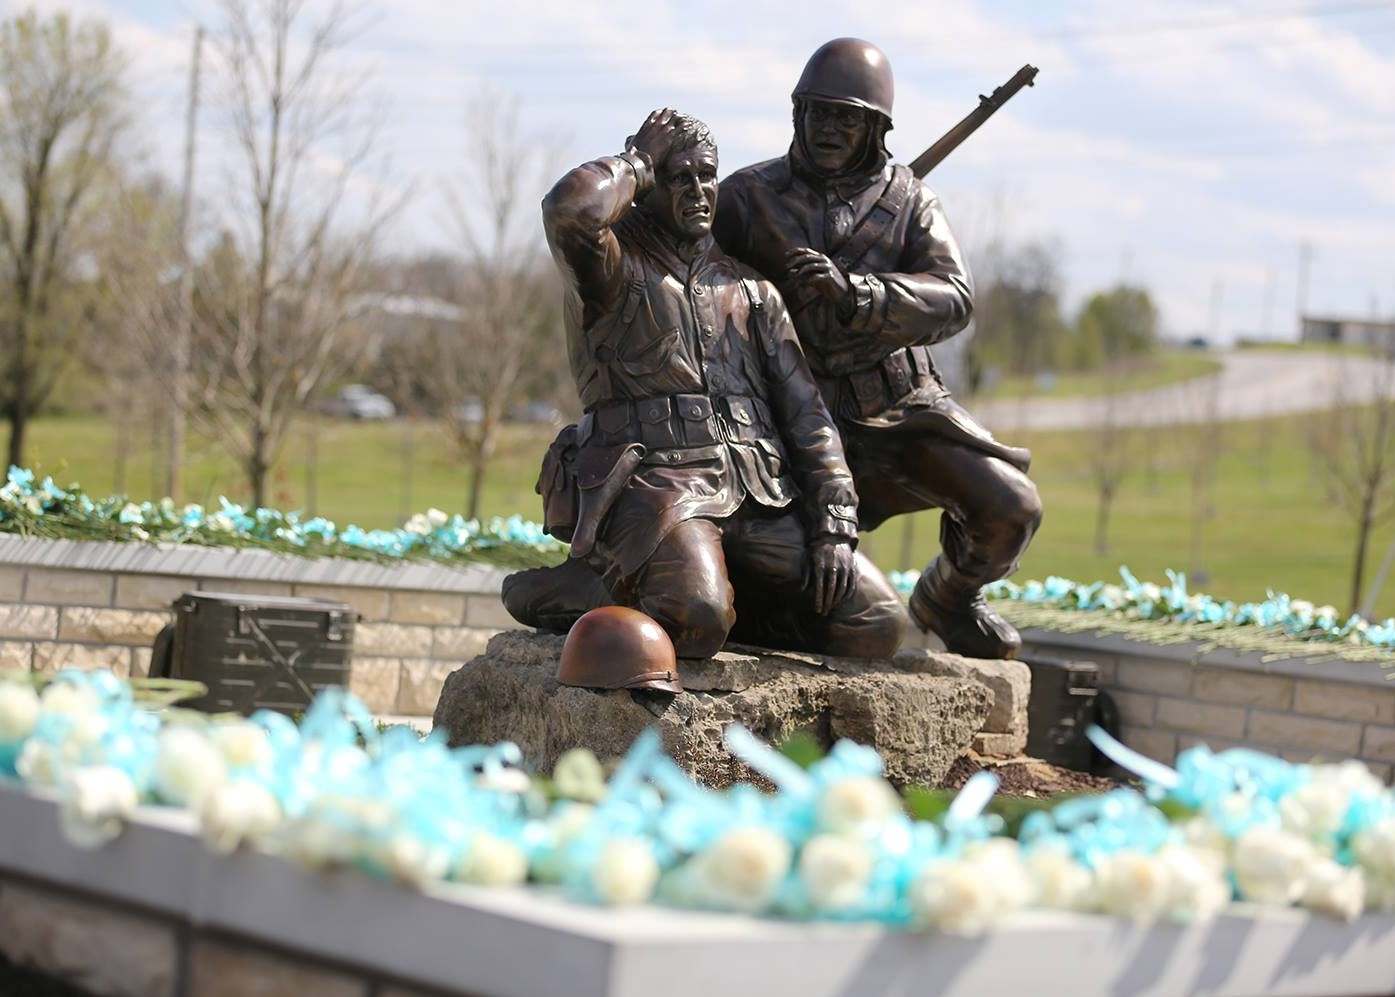 The Korean War Memorial at College of the Ozarks